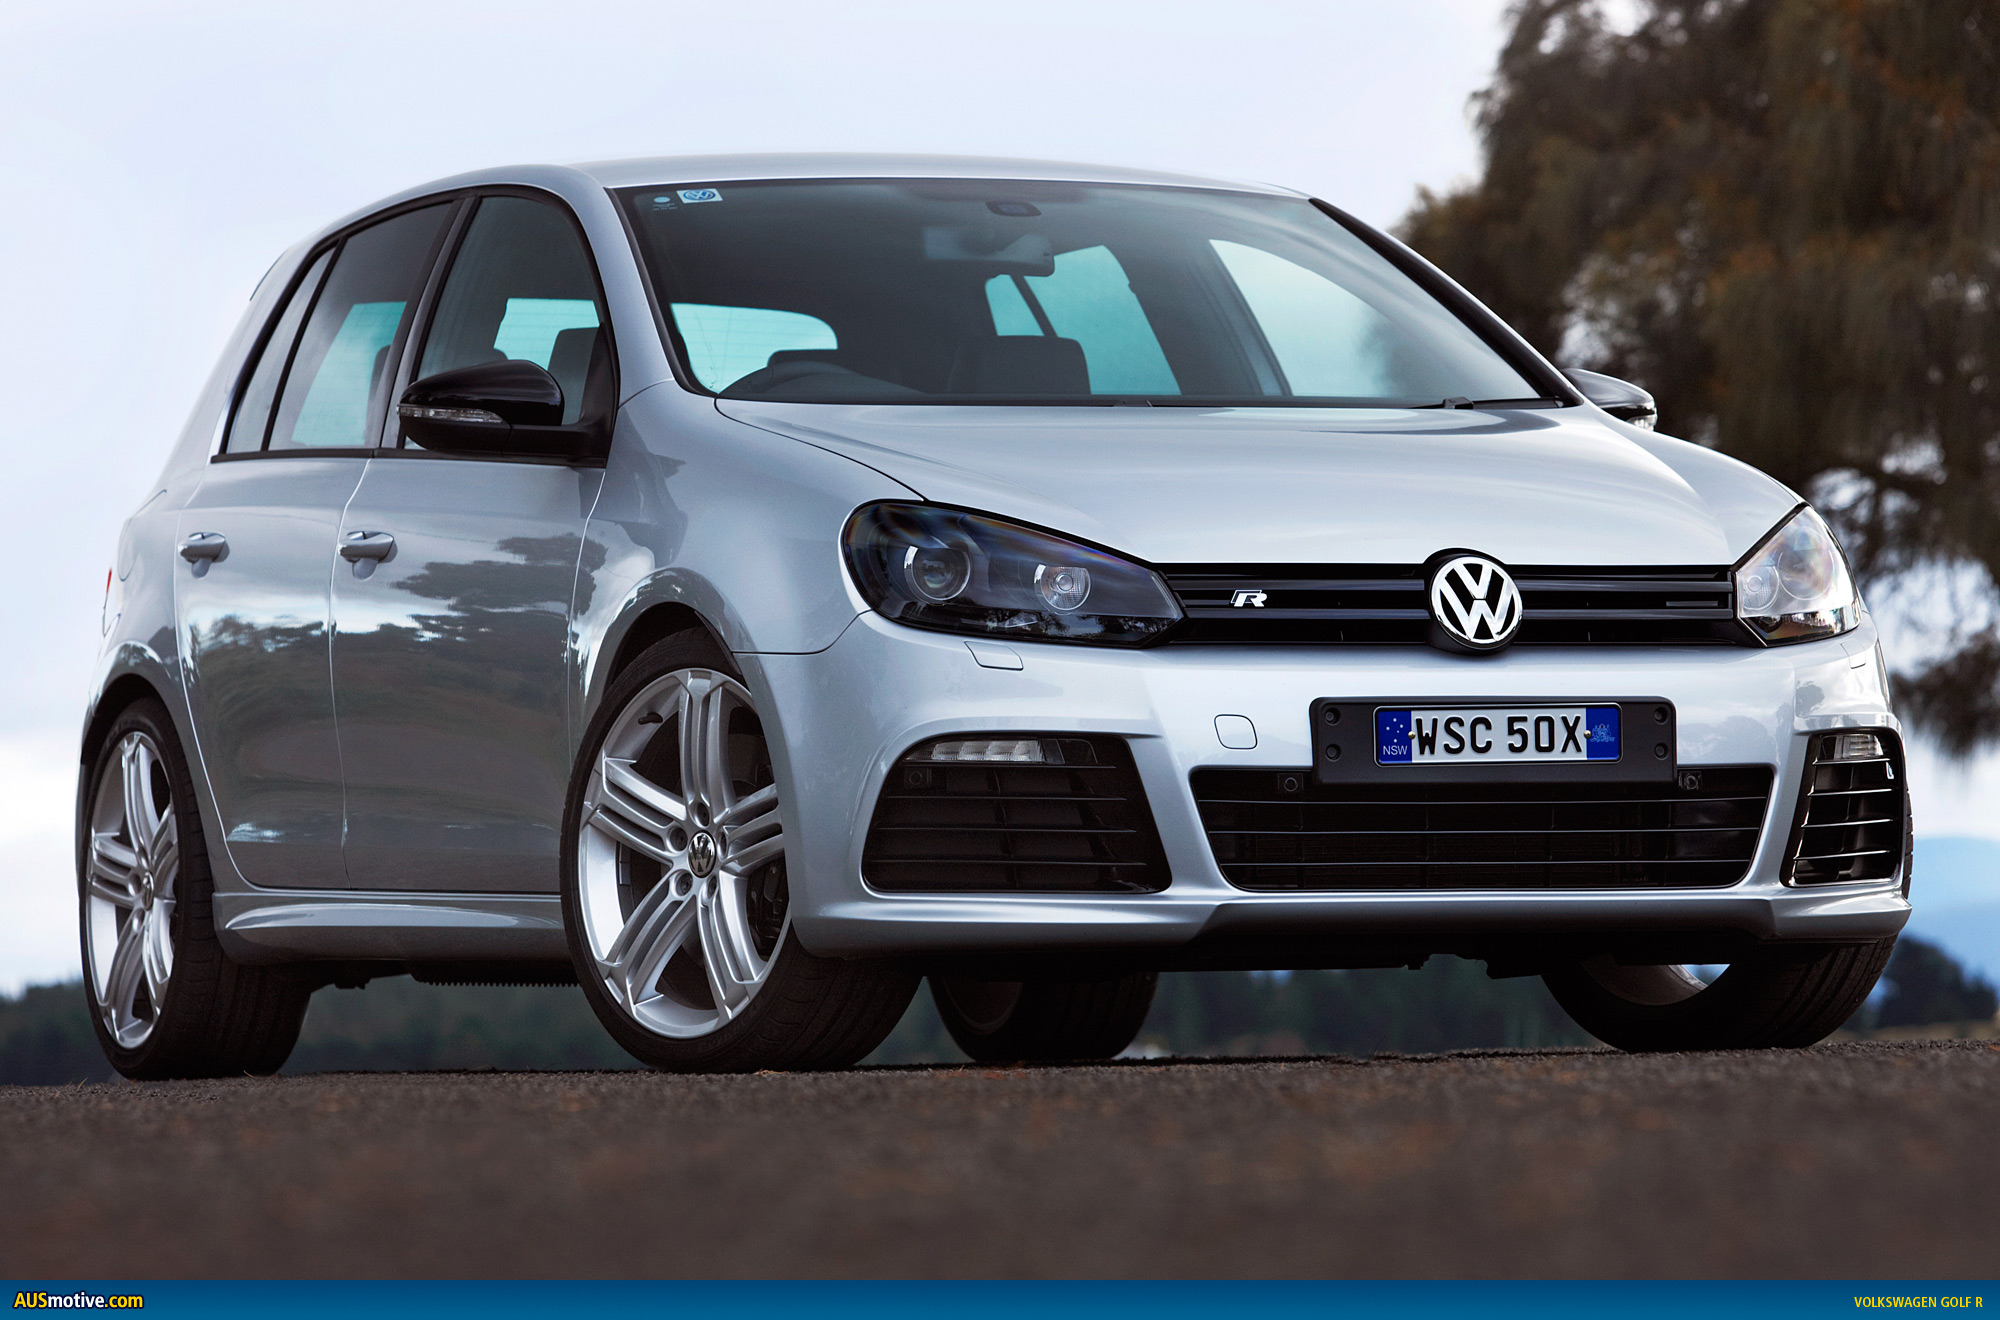 for the 188kW Golf R have